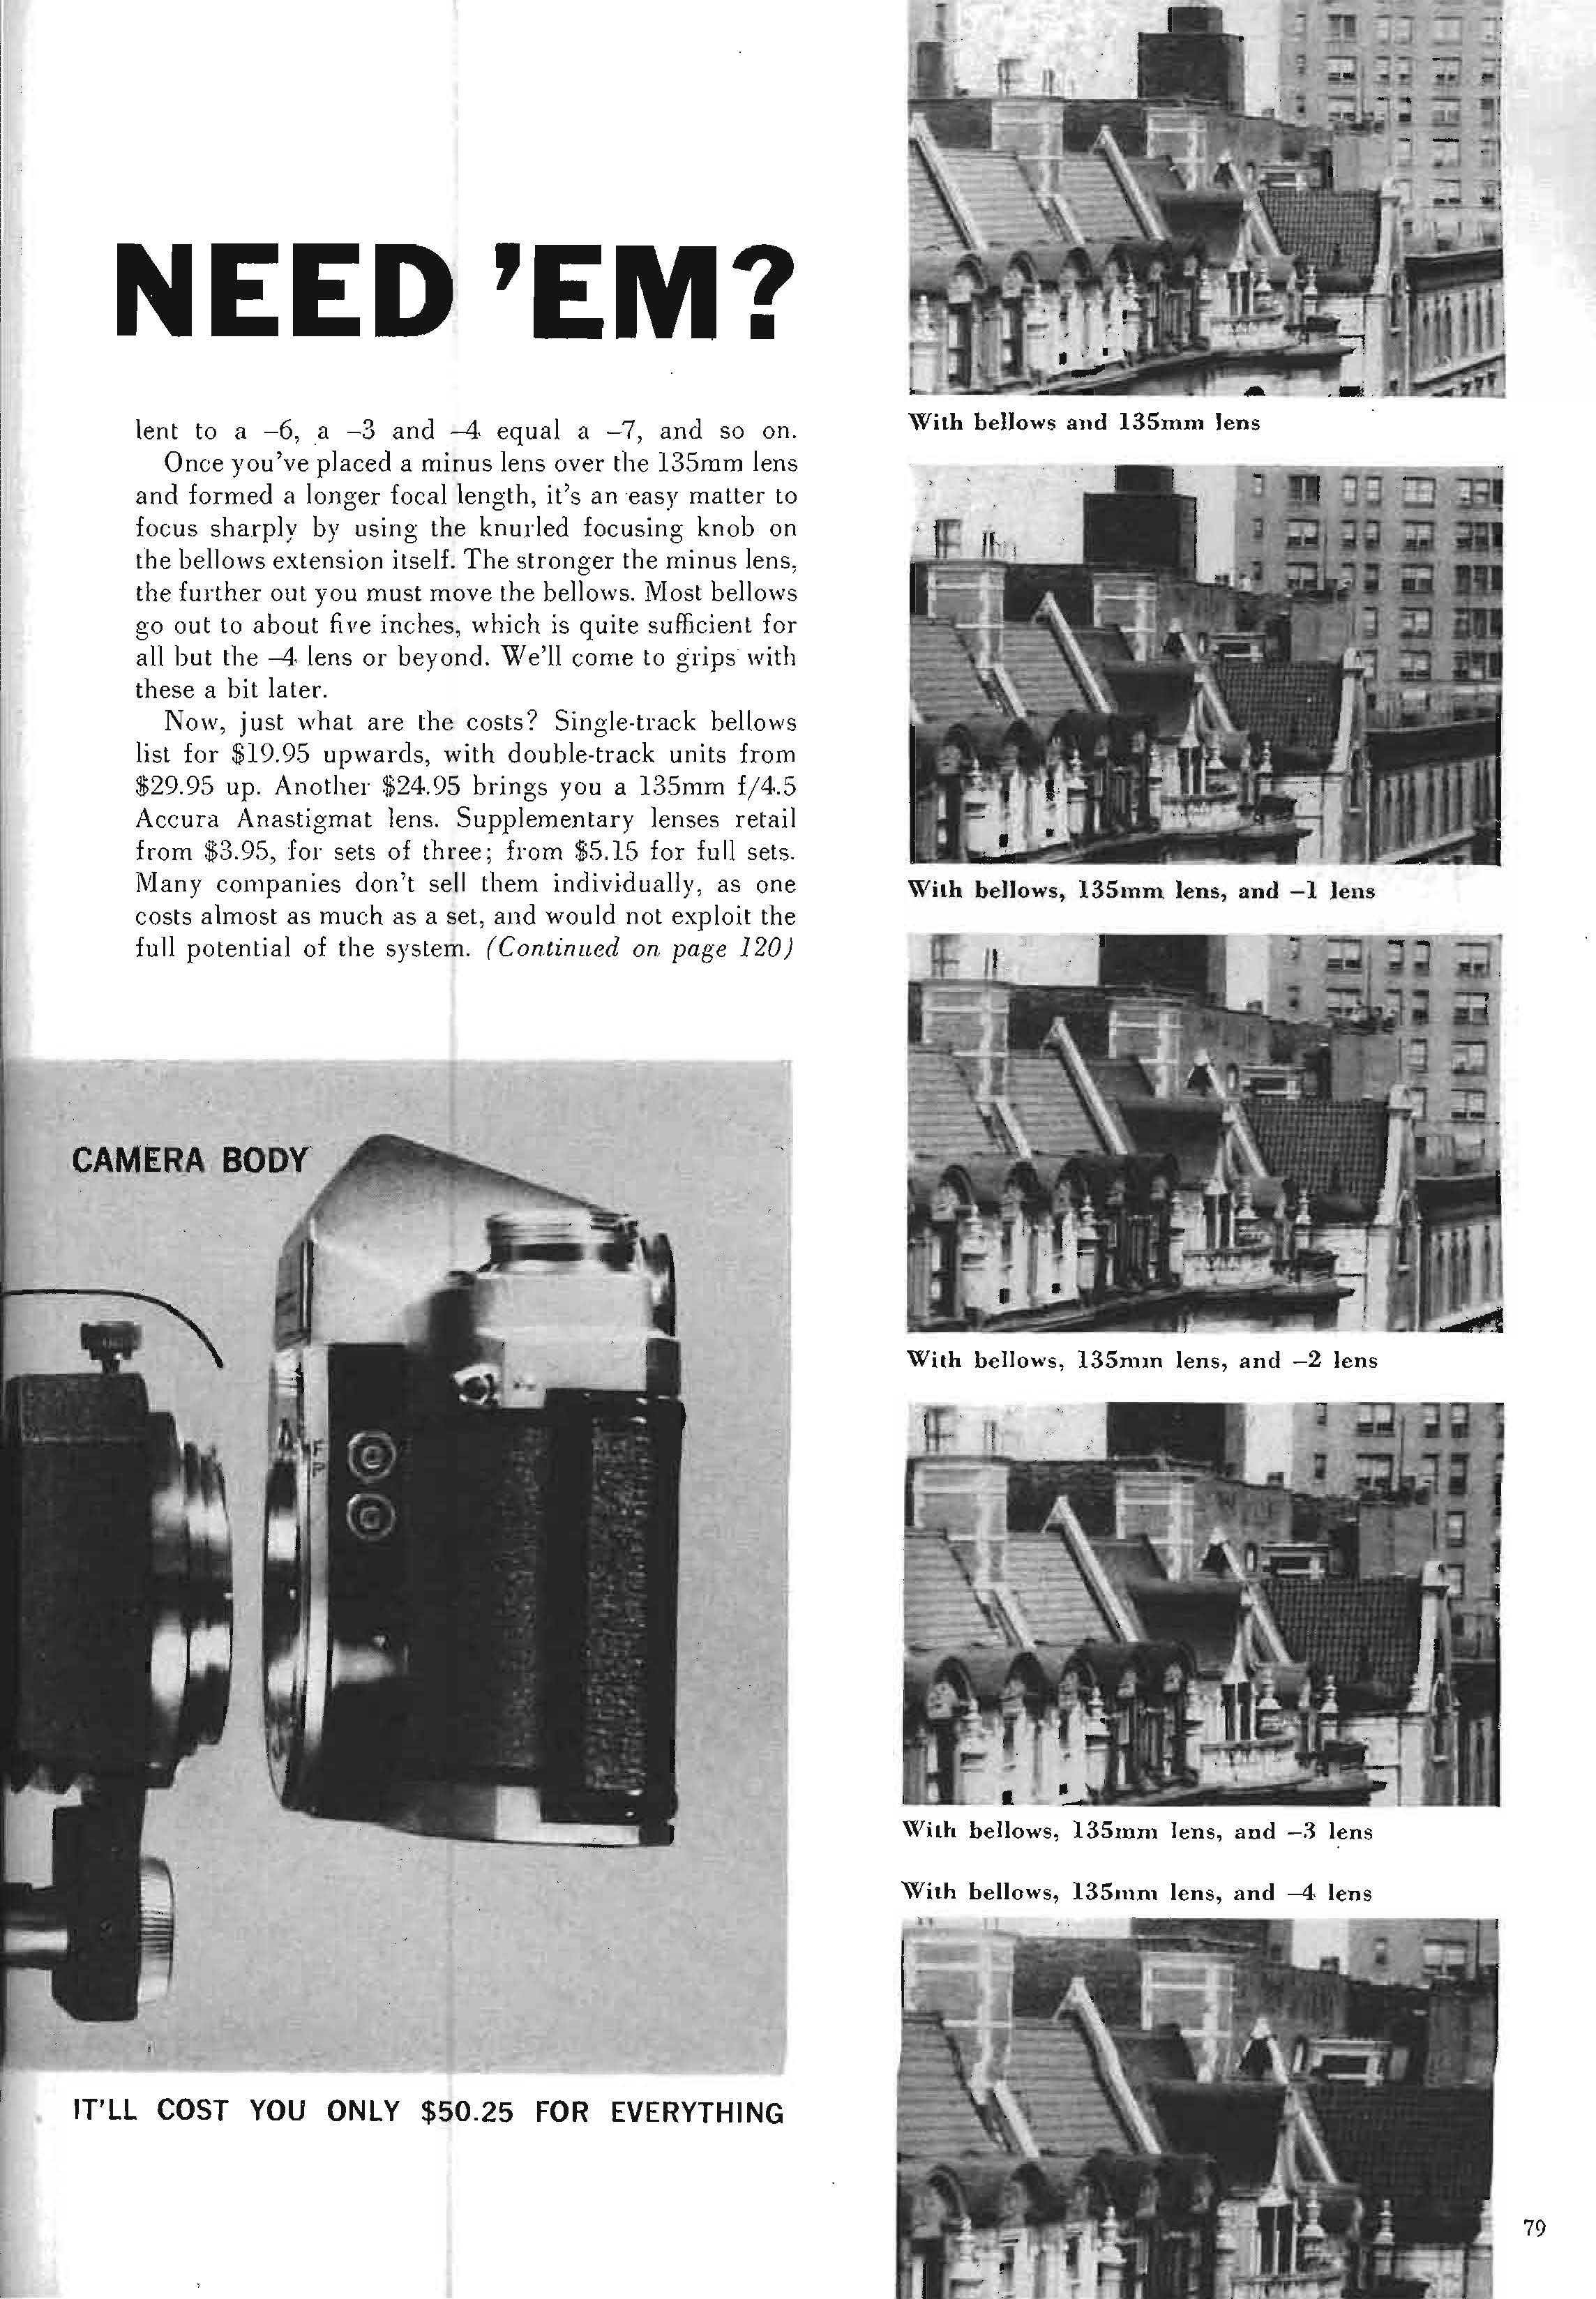 Telephotos-Need Them? 1959-11 MP +_Page_2.jpg